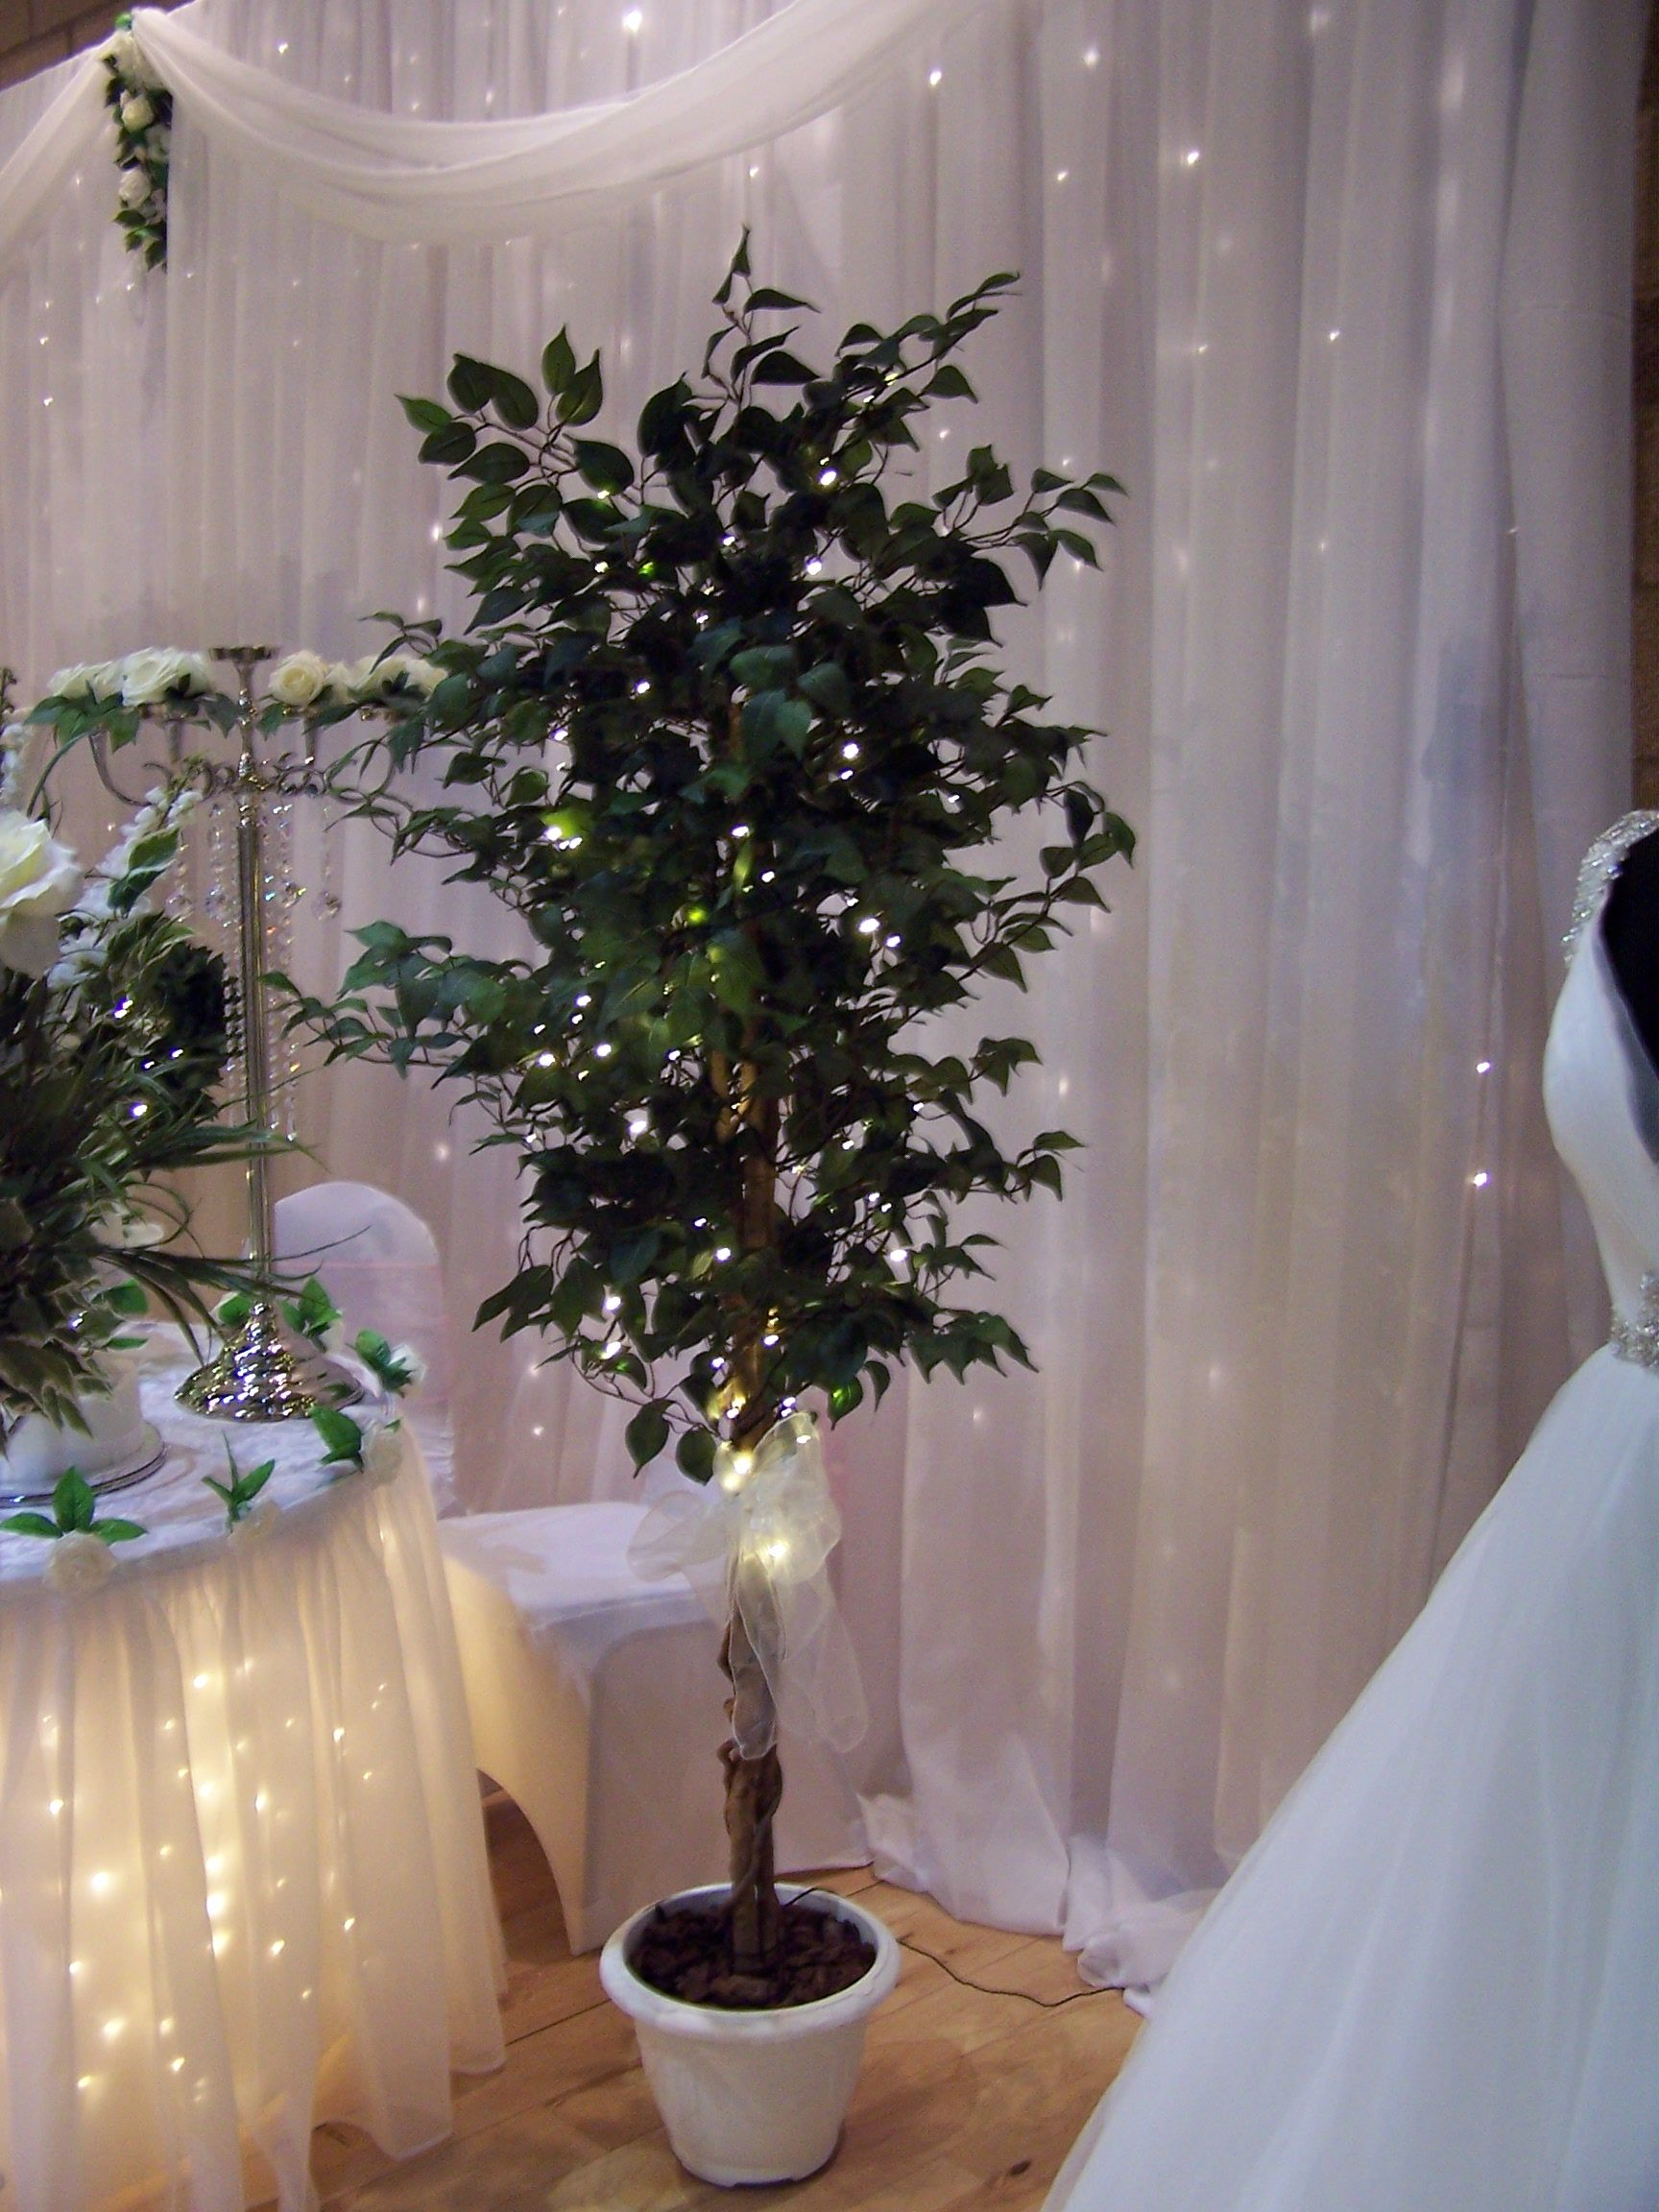 Led Lit Artificial Ficus Trees To Illuminate Your Wedding Venue Hire It From Www Limelightwedding Lights Wedding Decor Wedding Tree Decorations Wedding Lights